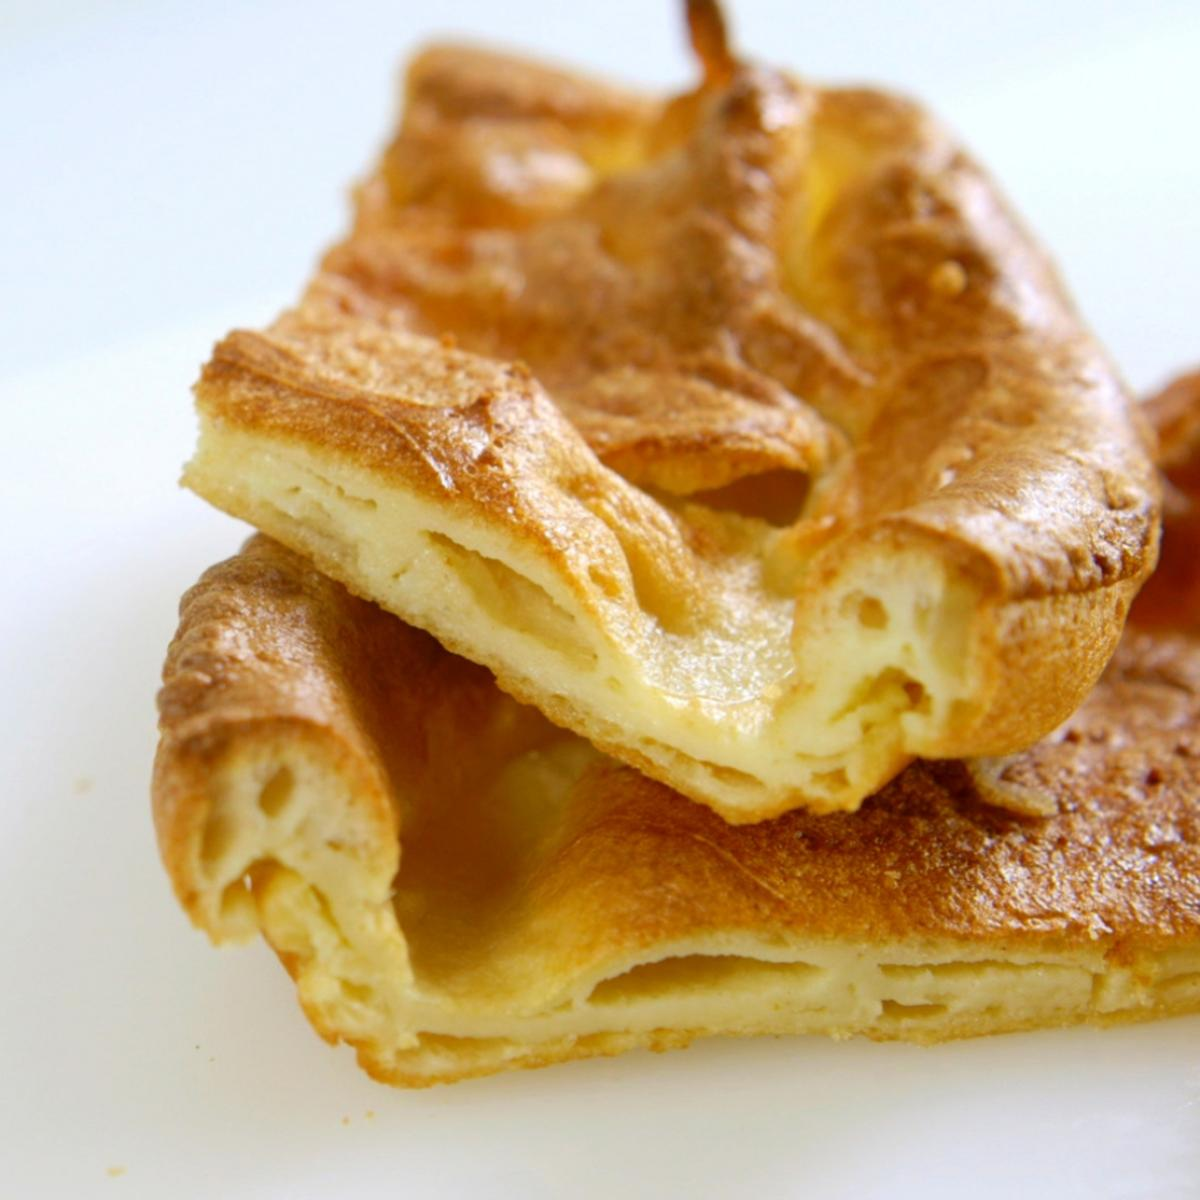 A picture of Delia's Yorkshire Pudding for 4 recipe